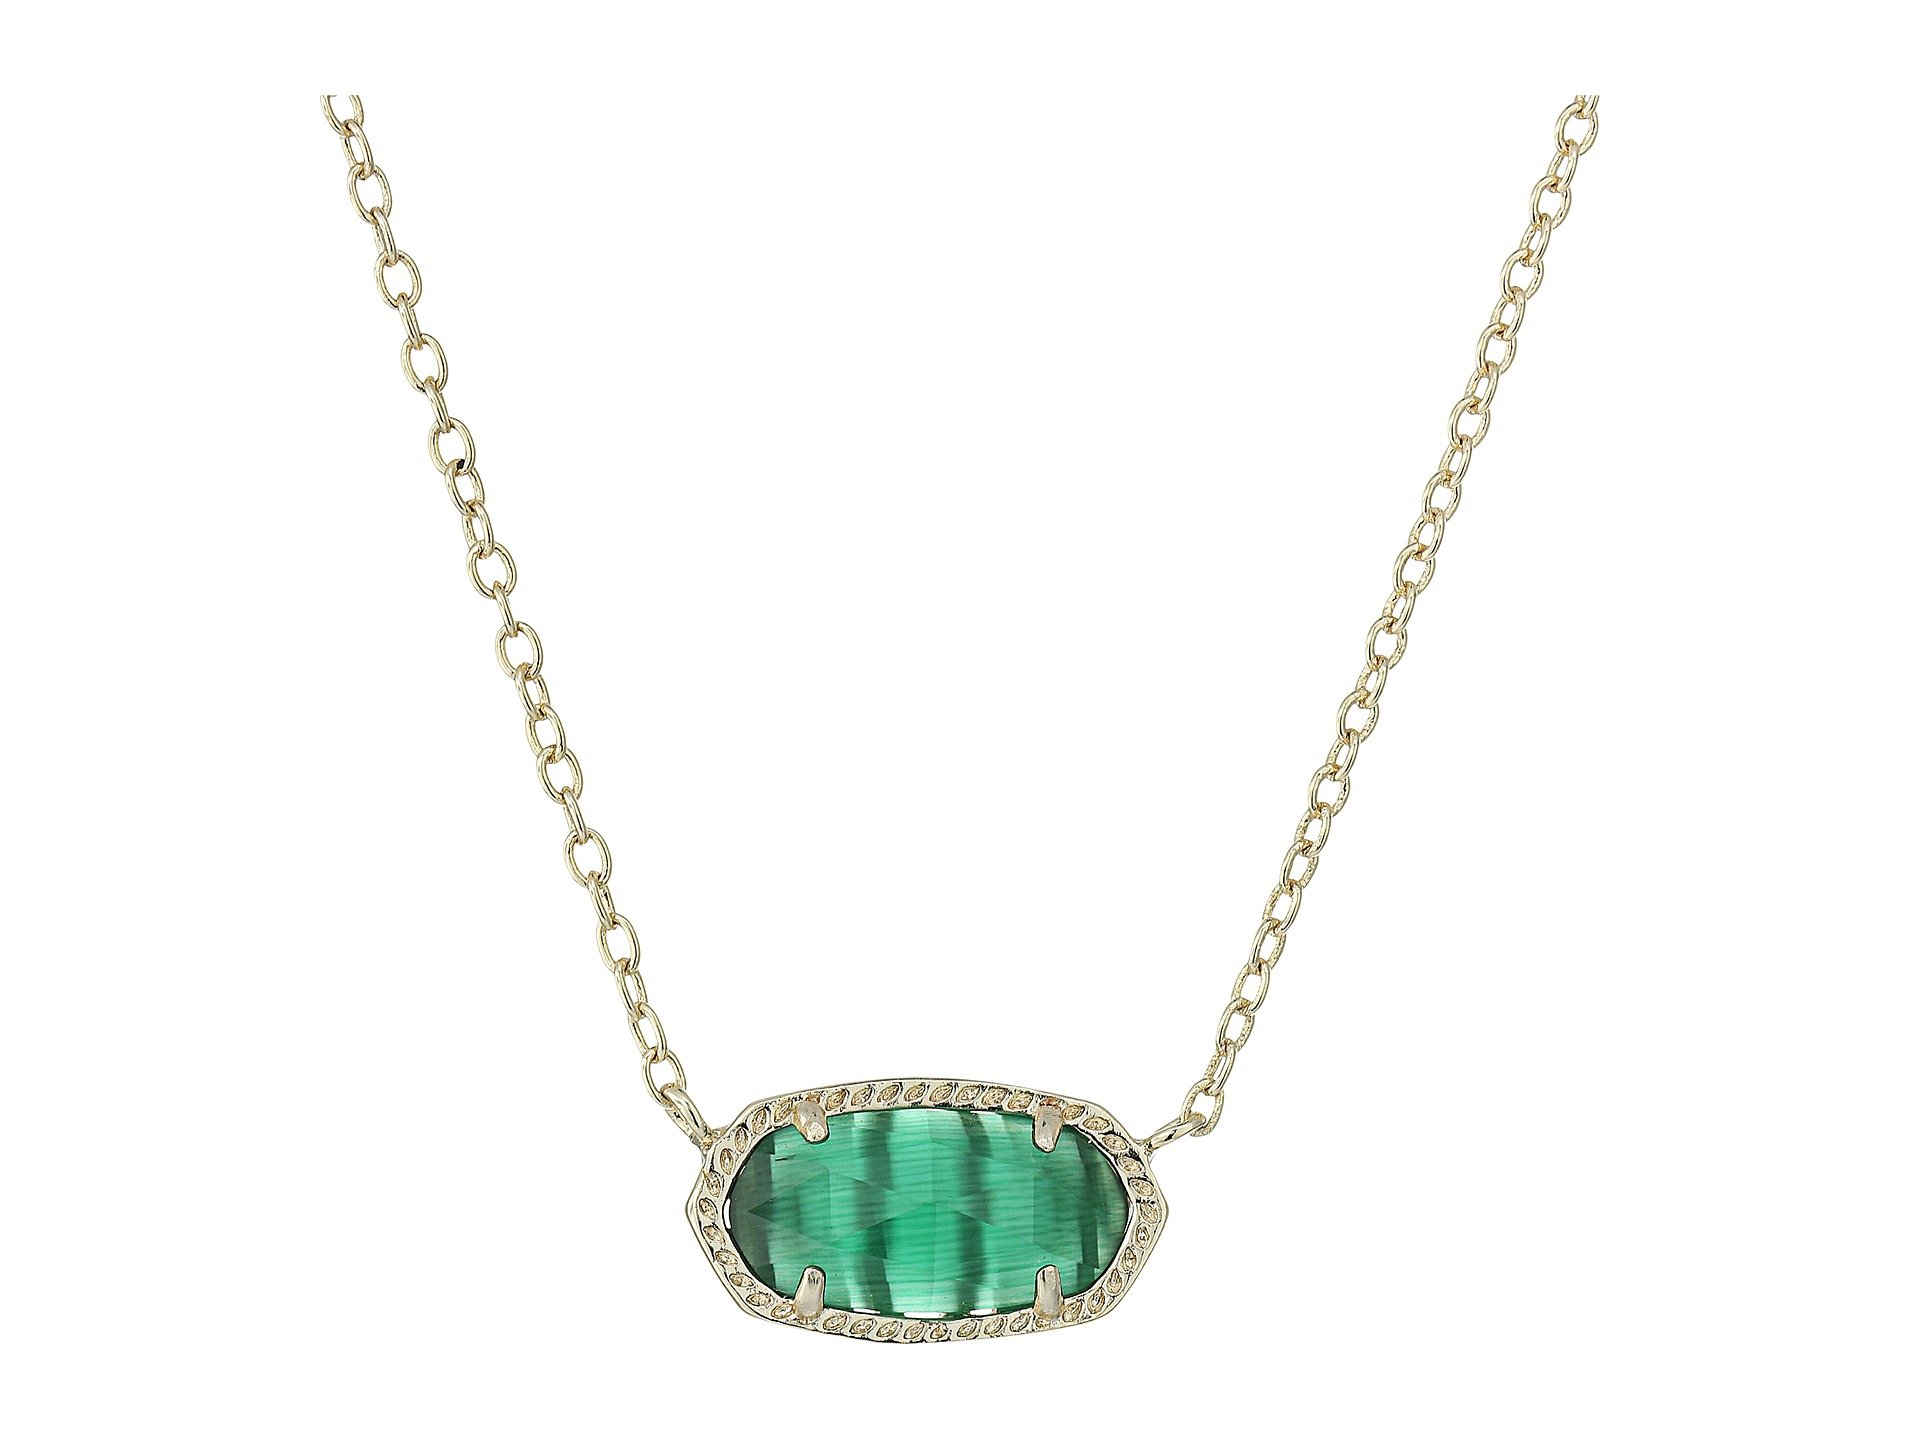 Kendra Scott Elisa Birthstone Necklace At Zappos Com